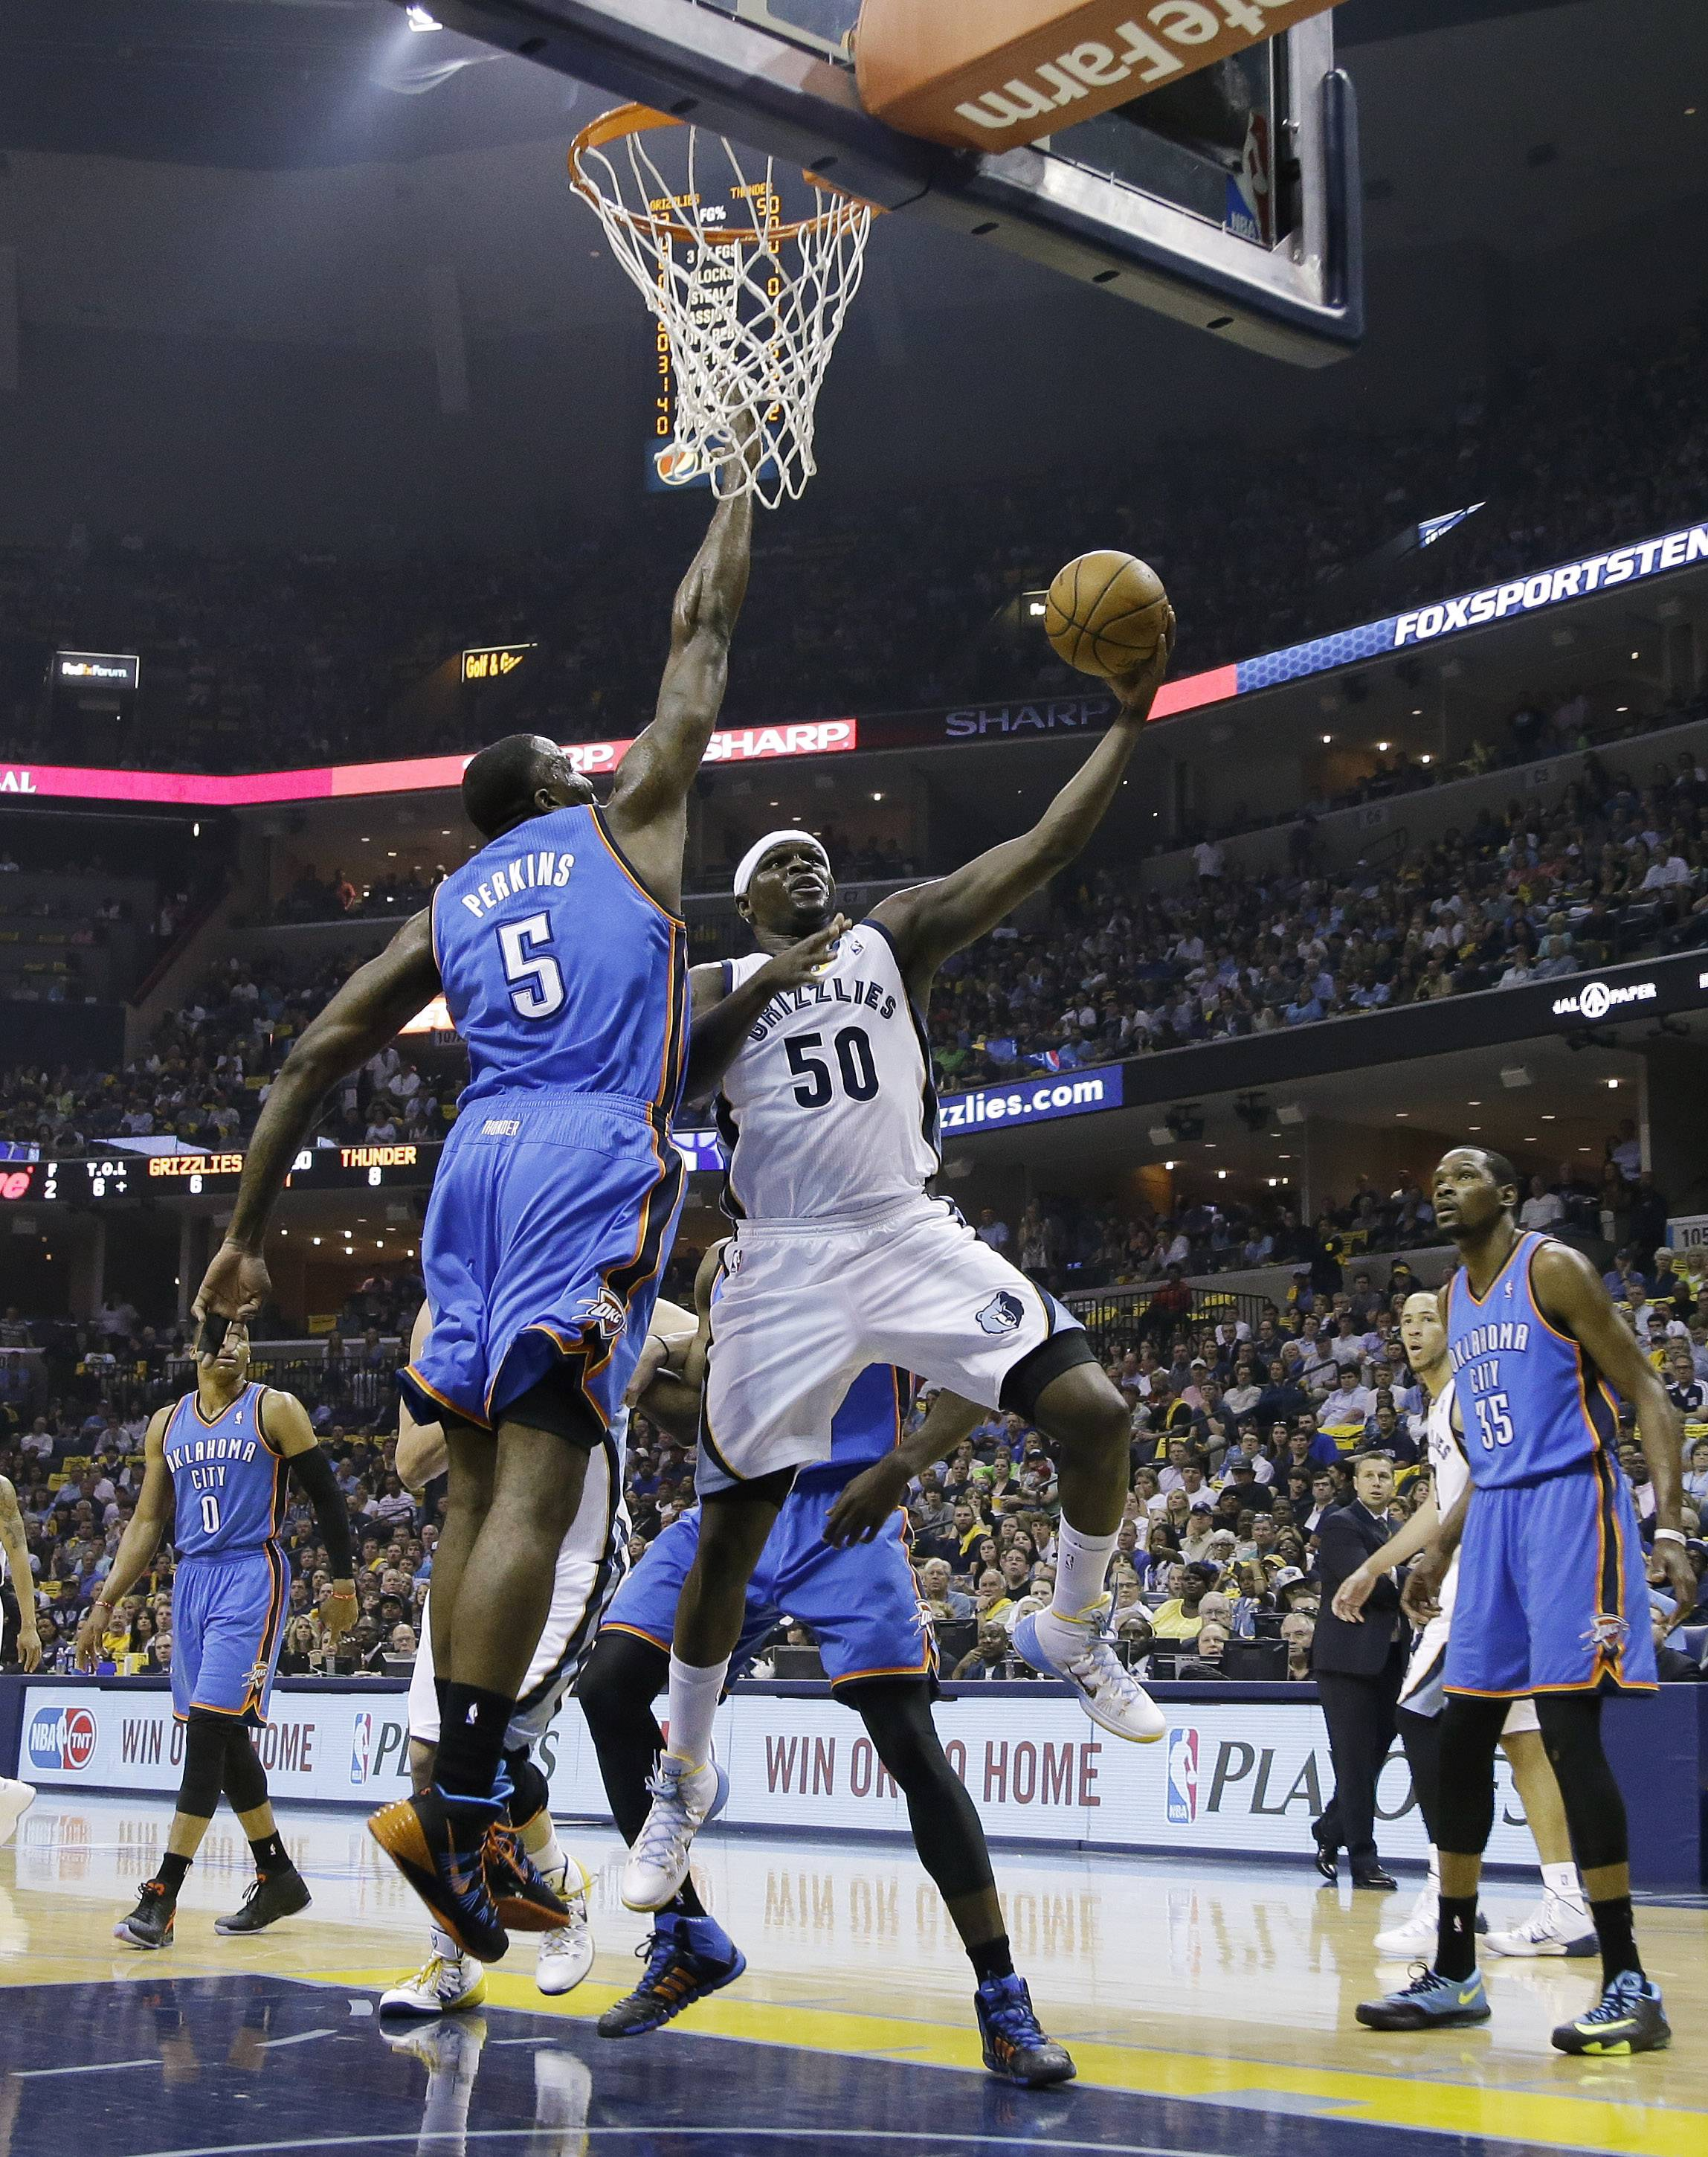 Memphis Grizzlies forward Zach Randolph (50) scores against Oklahoma City Thunder center Kendrick Perkins (5) in the first half of Game 3 of an opening-round NBA basketball playoff series Thursday, April 24, 2014, in Memphis, Tenn.